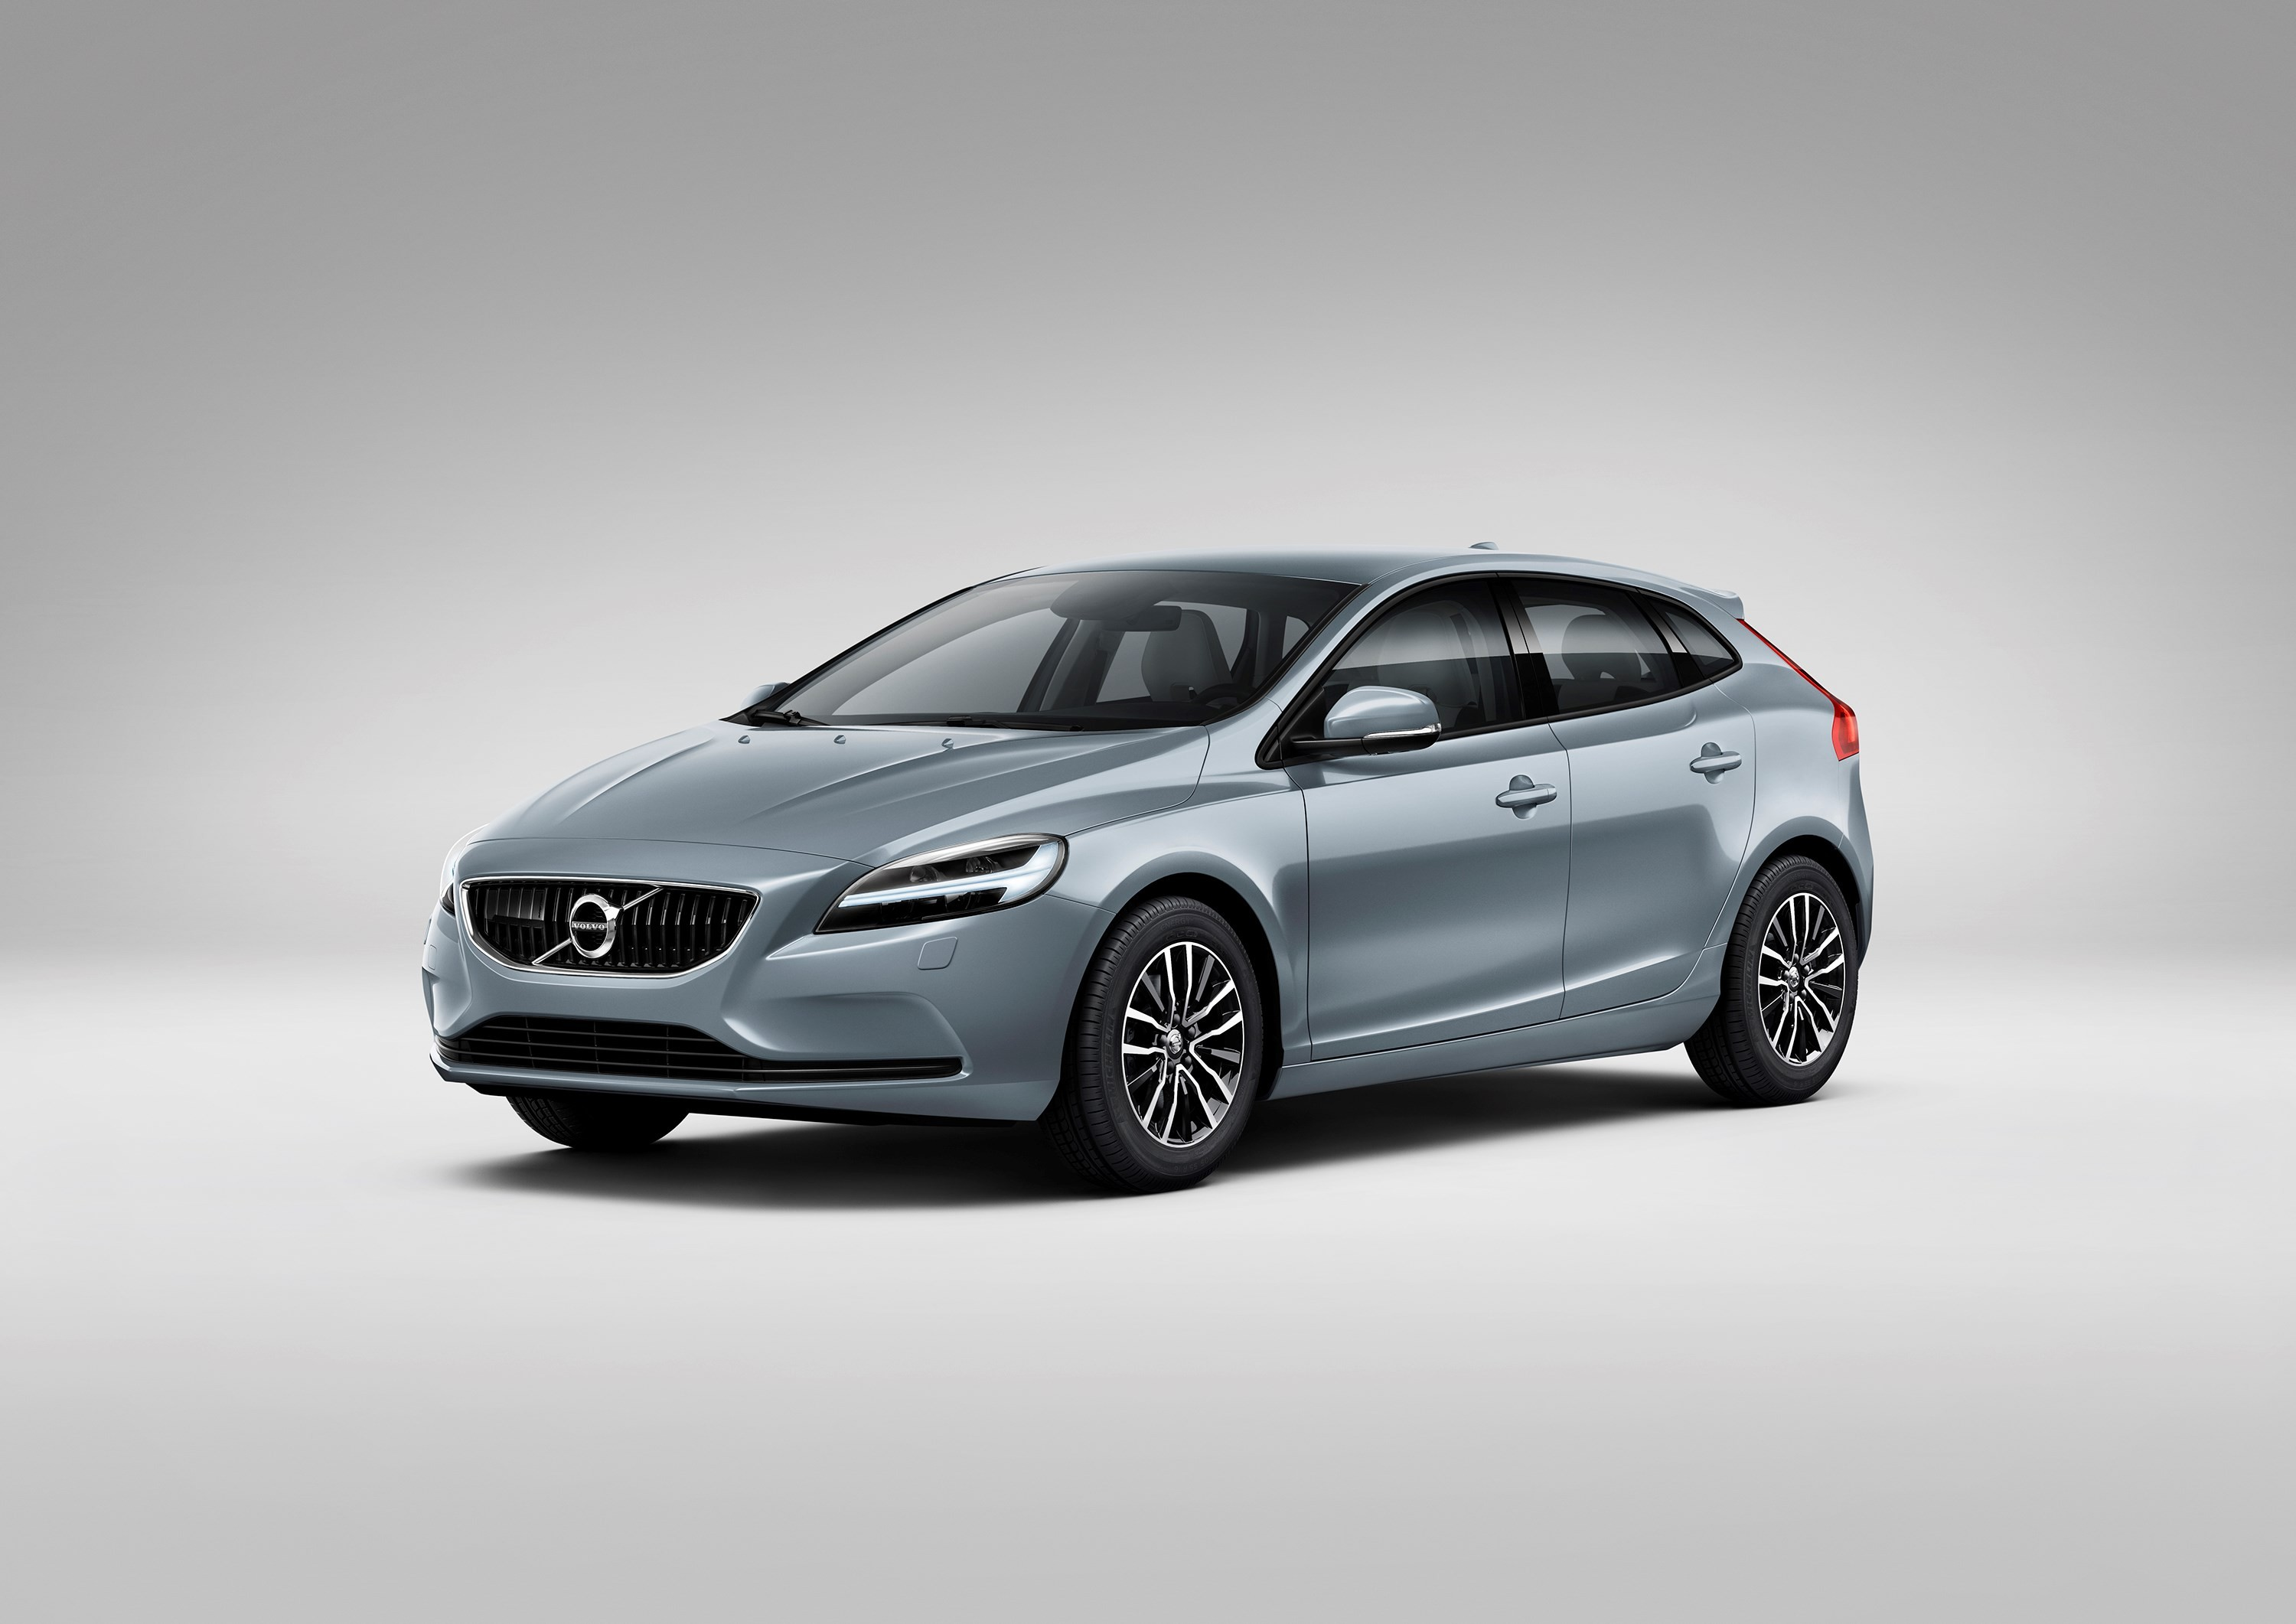 volvo testing twin clutch gearbox in v40 1 5 turbo confirmed for 60 series autoevolution. Black Bedroom Furniture Sets. Home Design Ideas